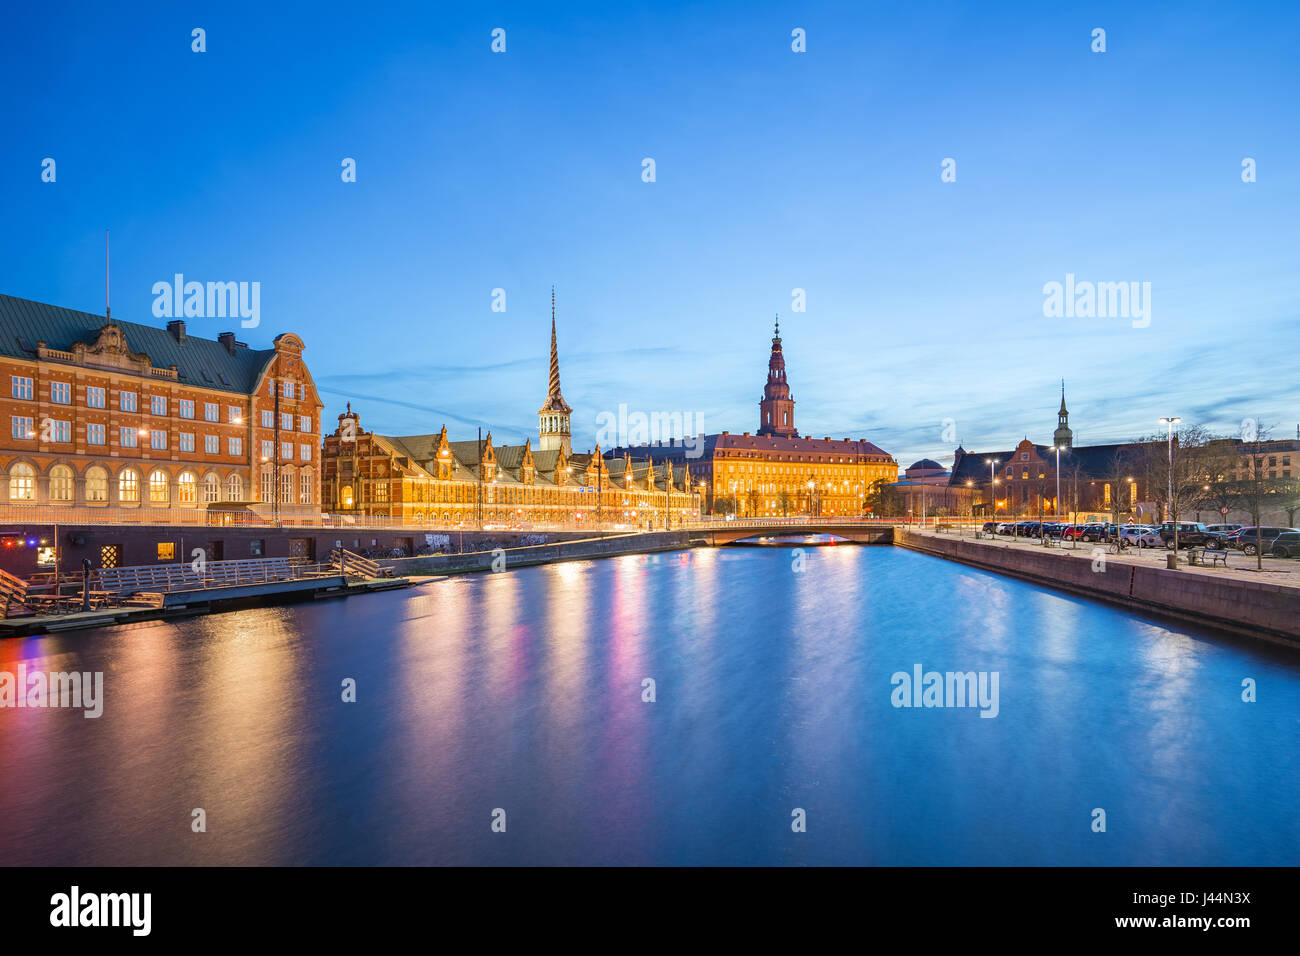 Vue sur la ville de Copenhague Christiansborg Palace de nuit à Copenhague, Danemark Photo Stock